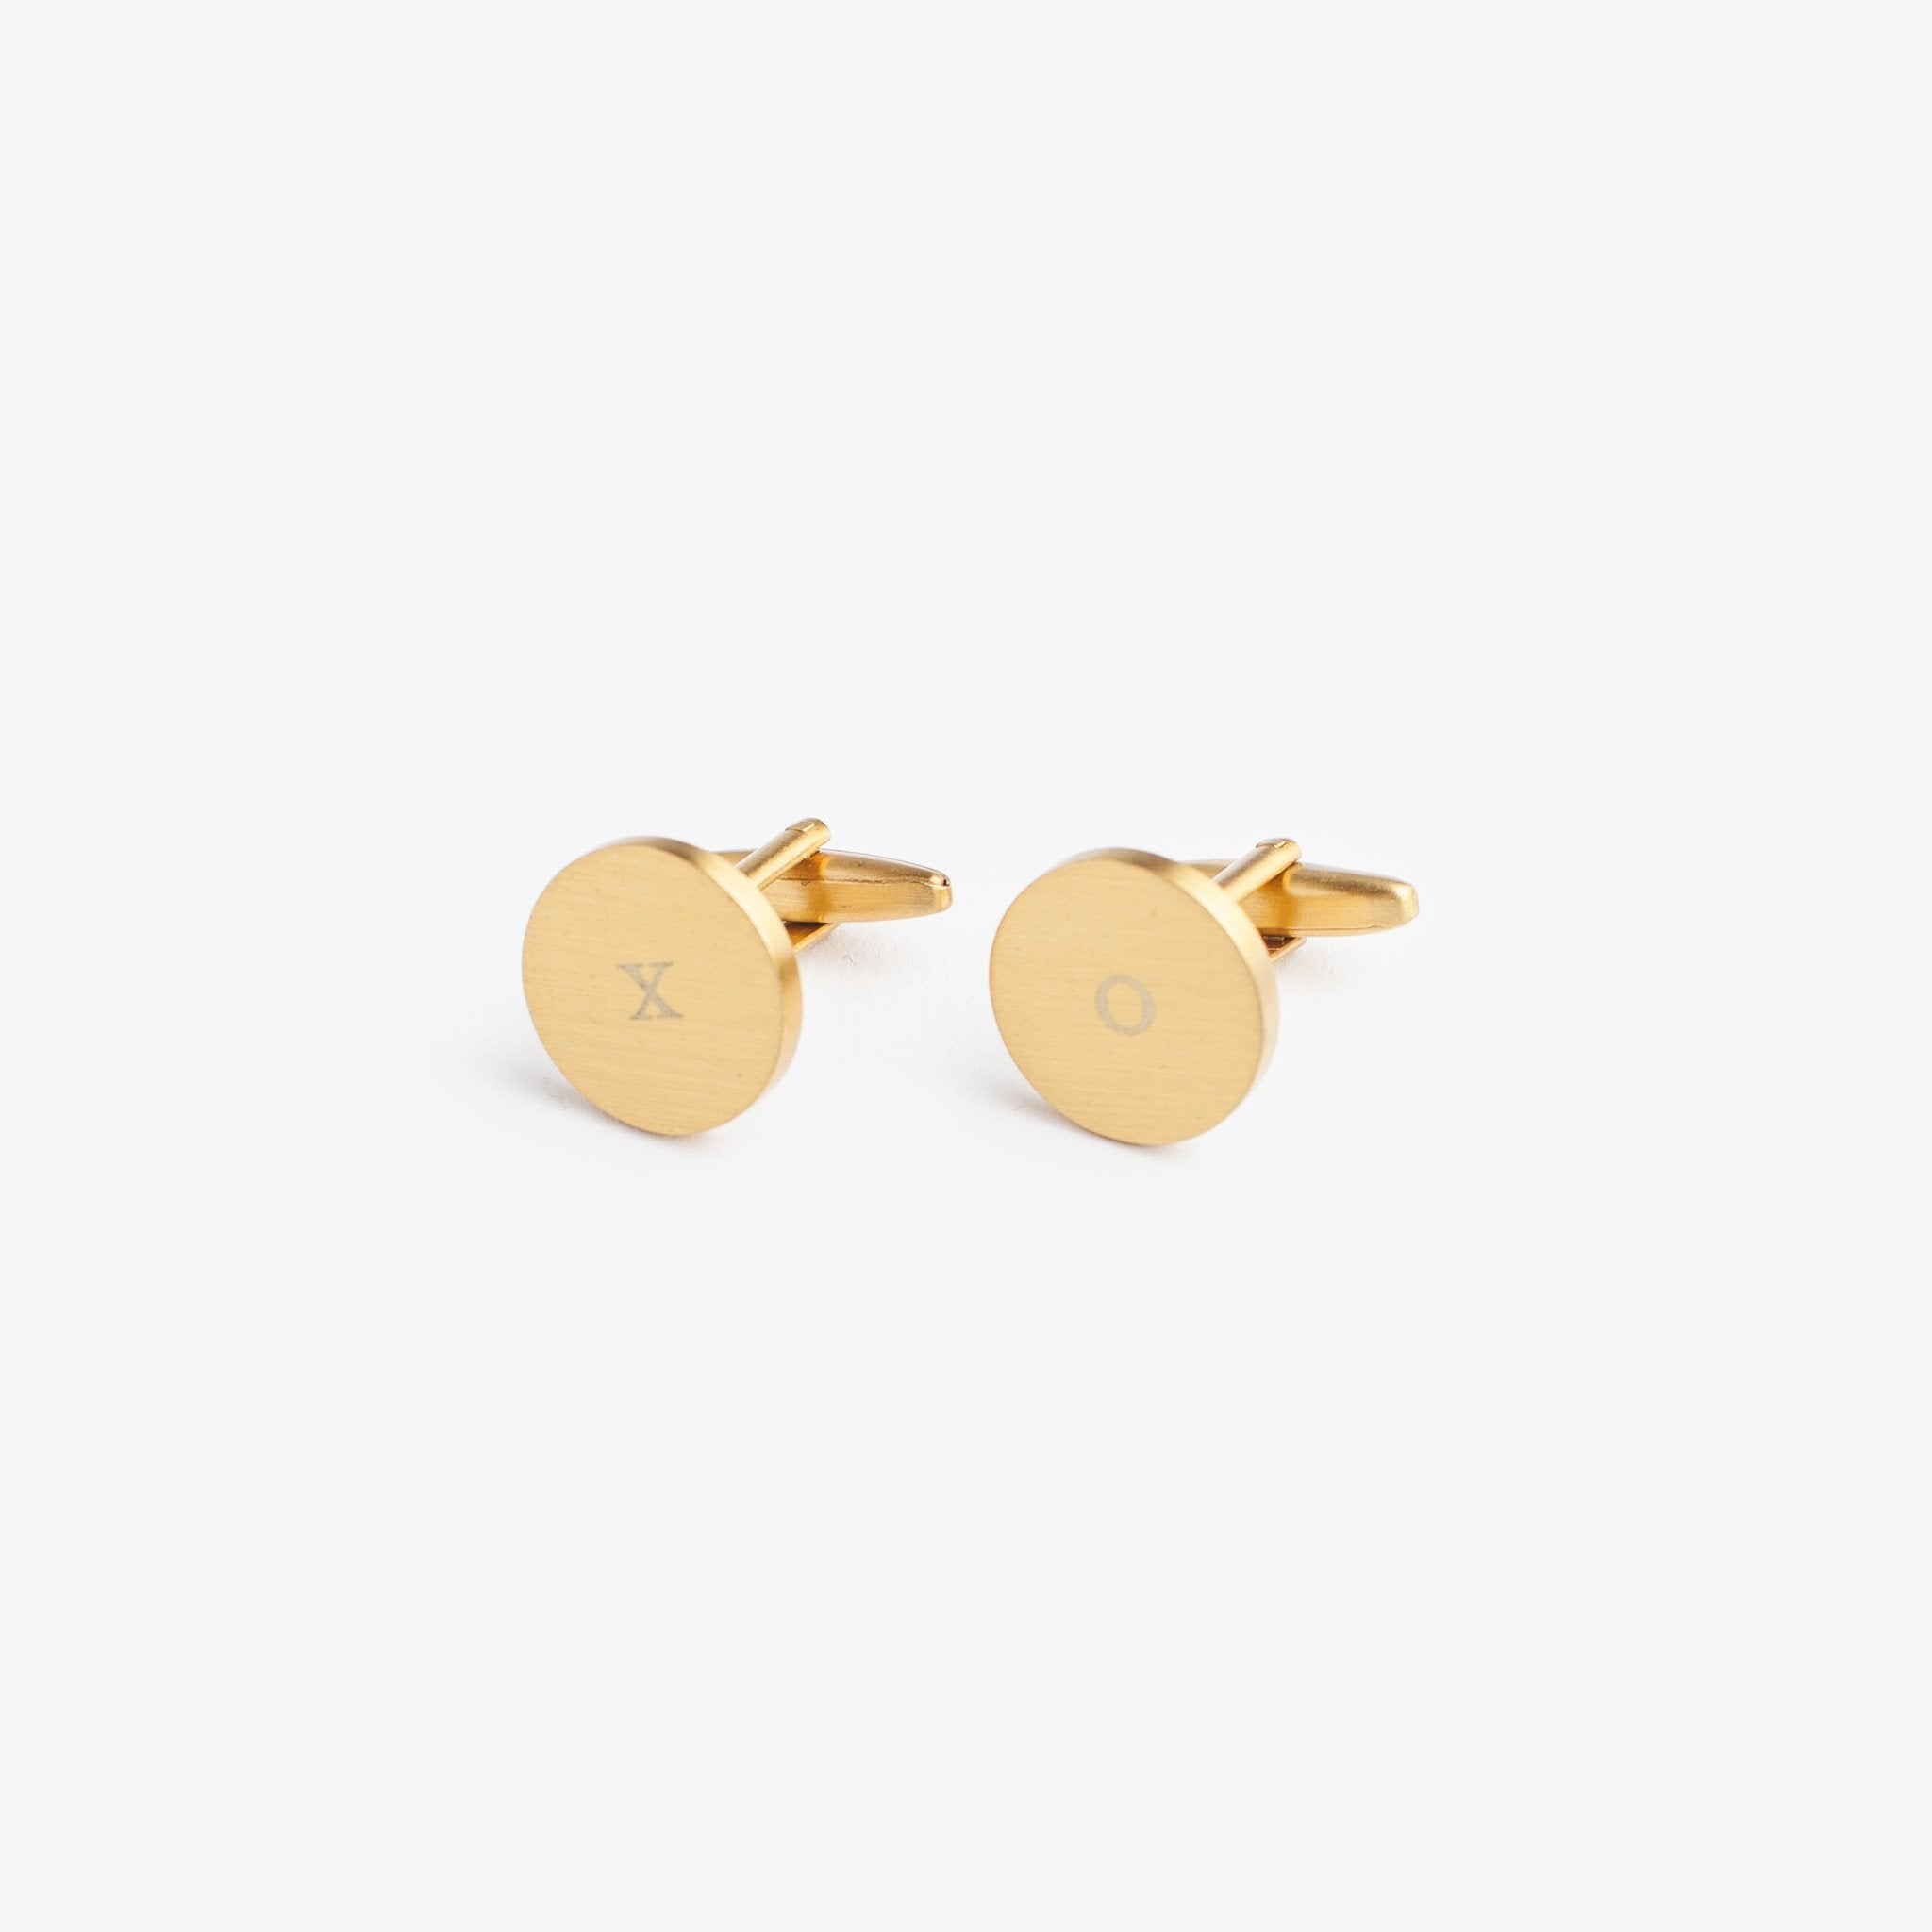 Izola Brass Plated Cuff Links